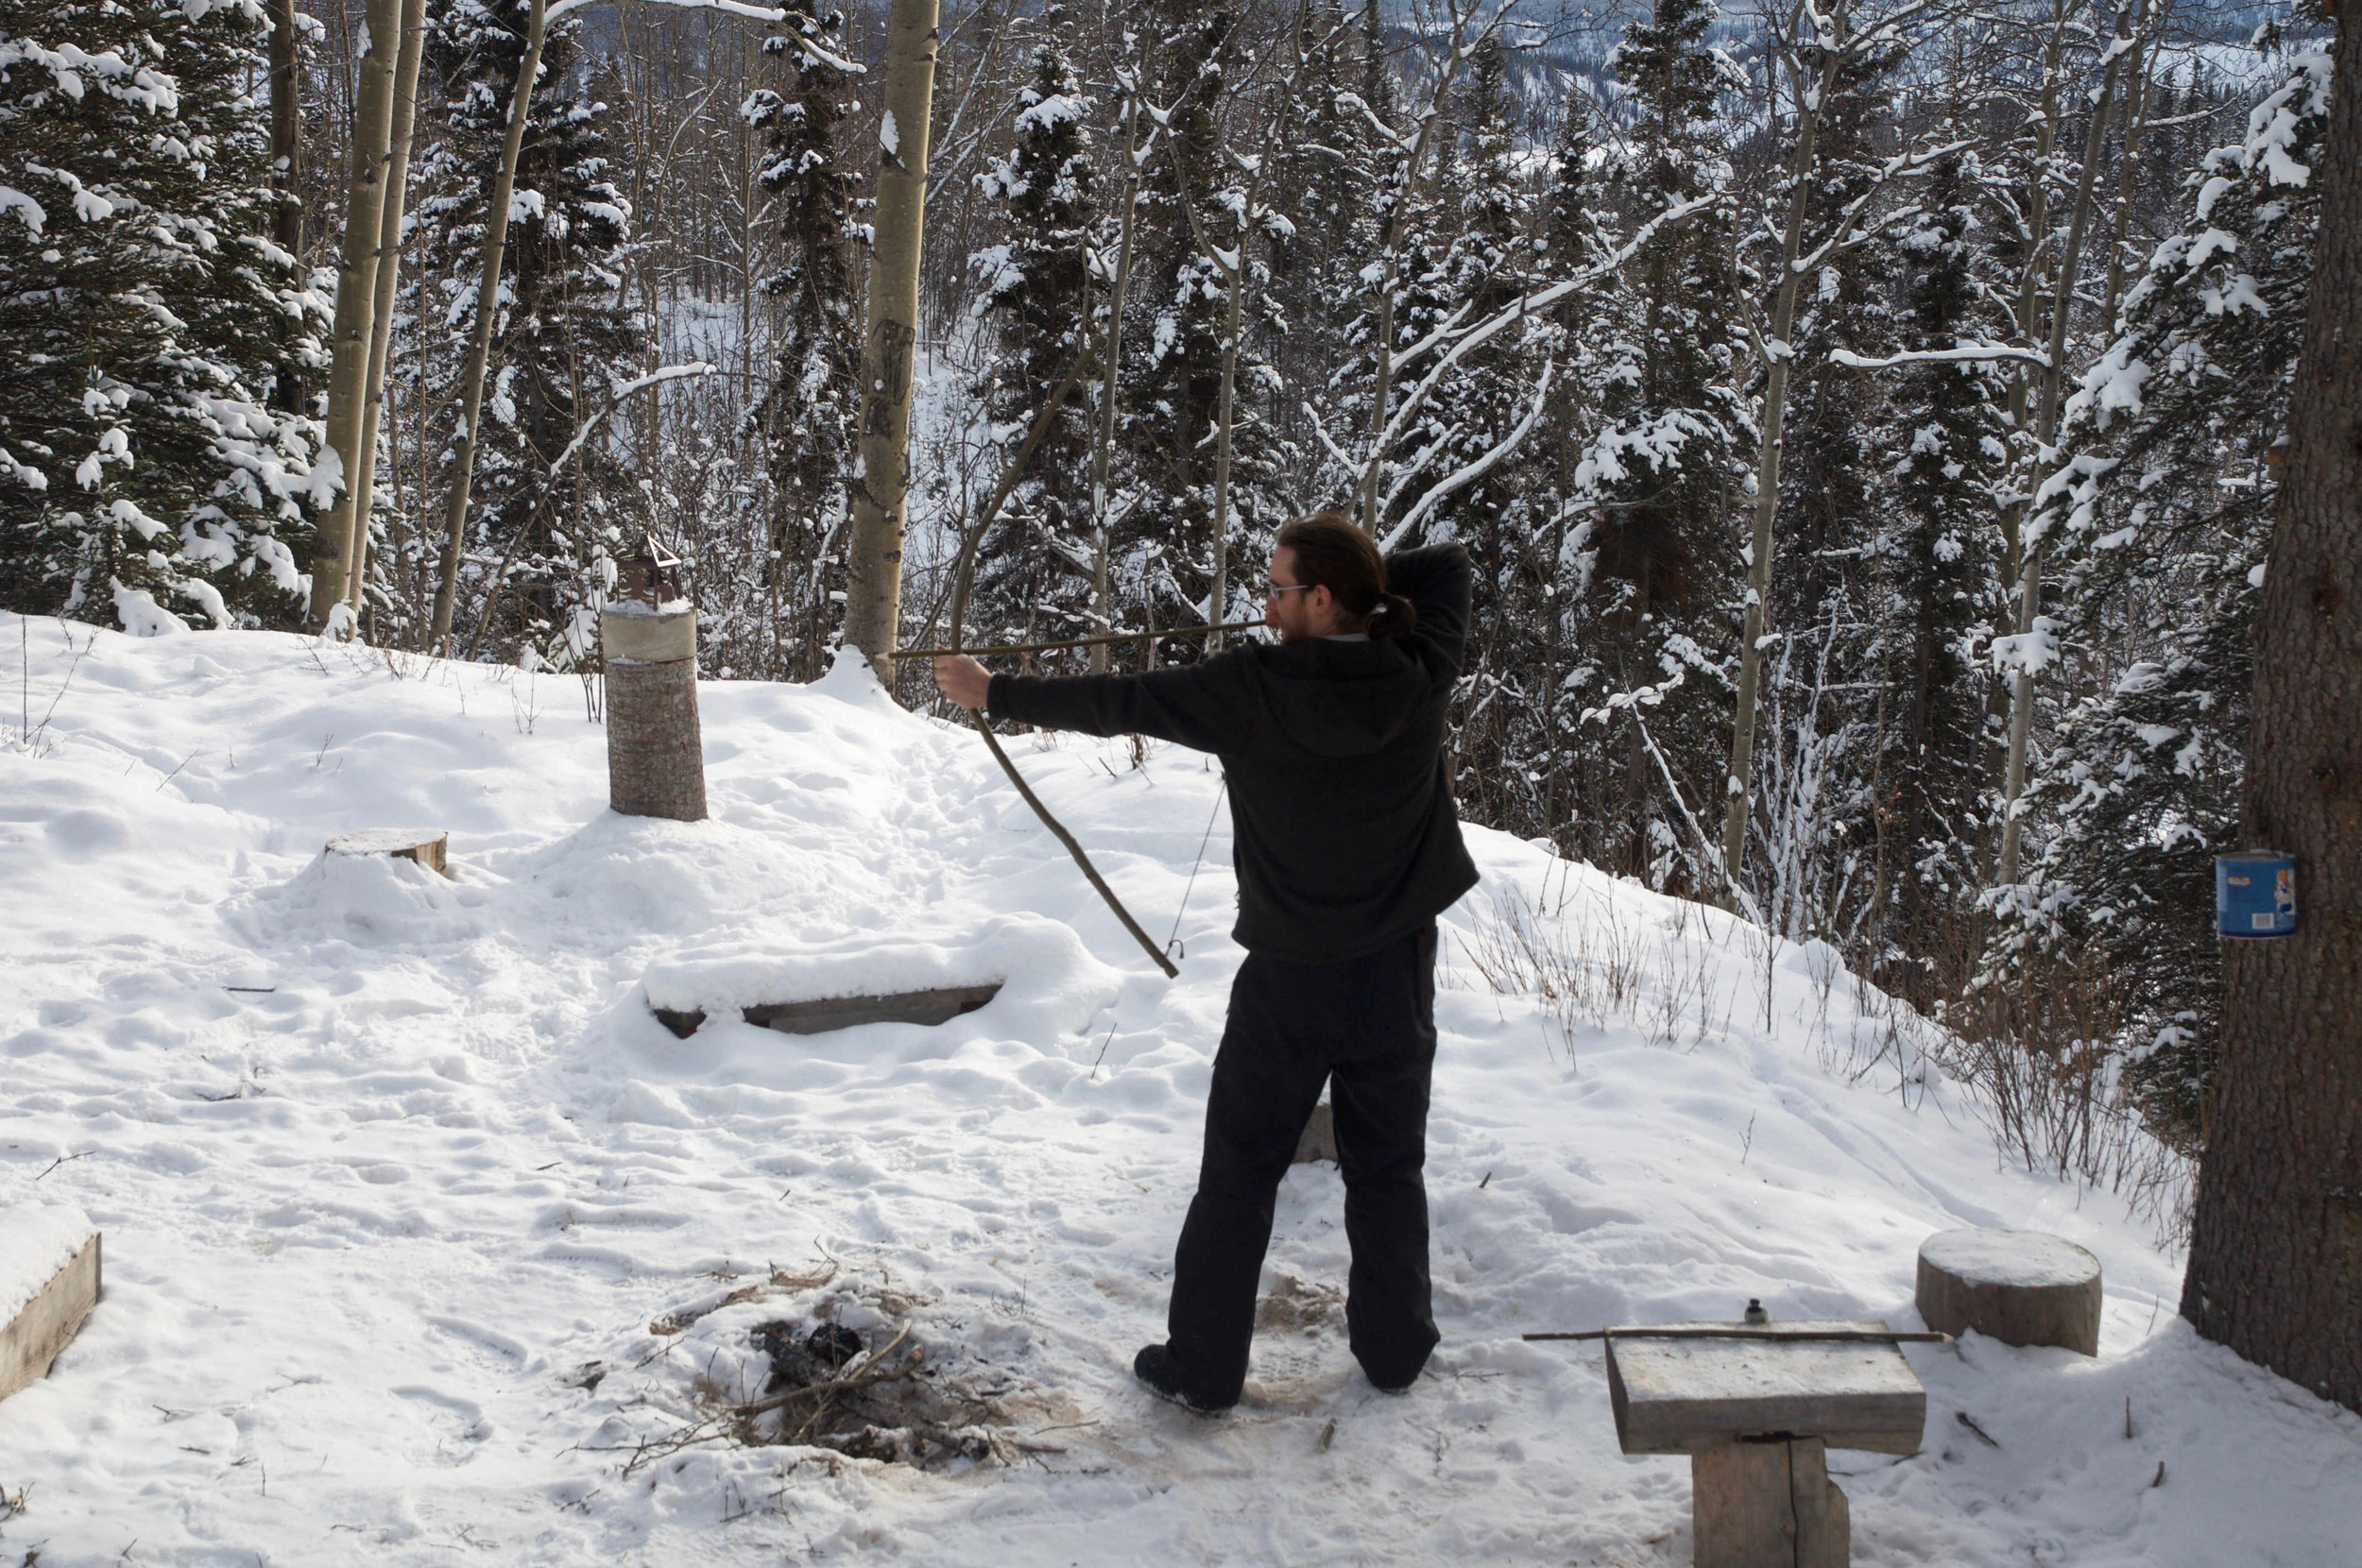 Martin Morrison shooting his homemade bow and arrow.